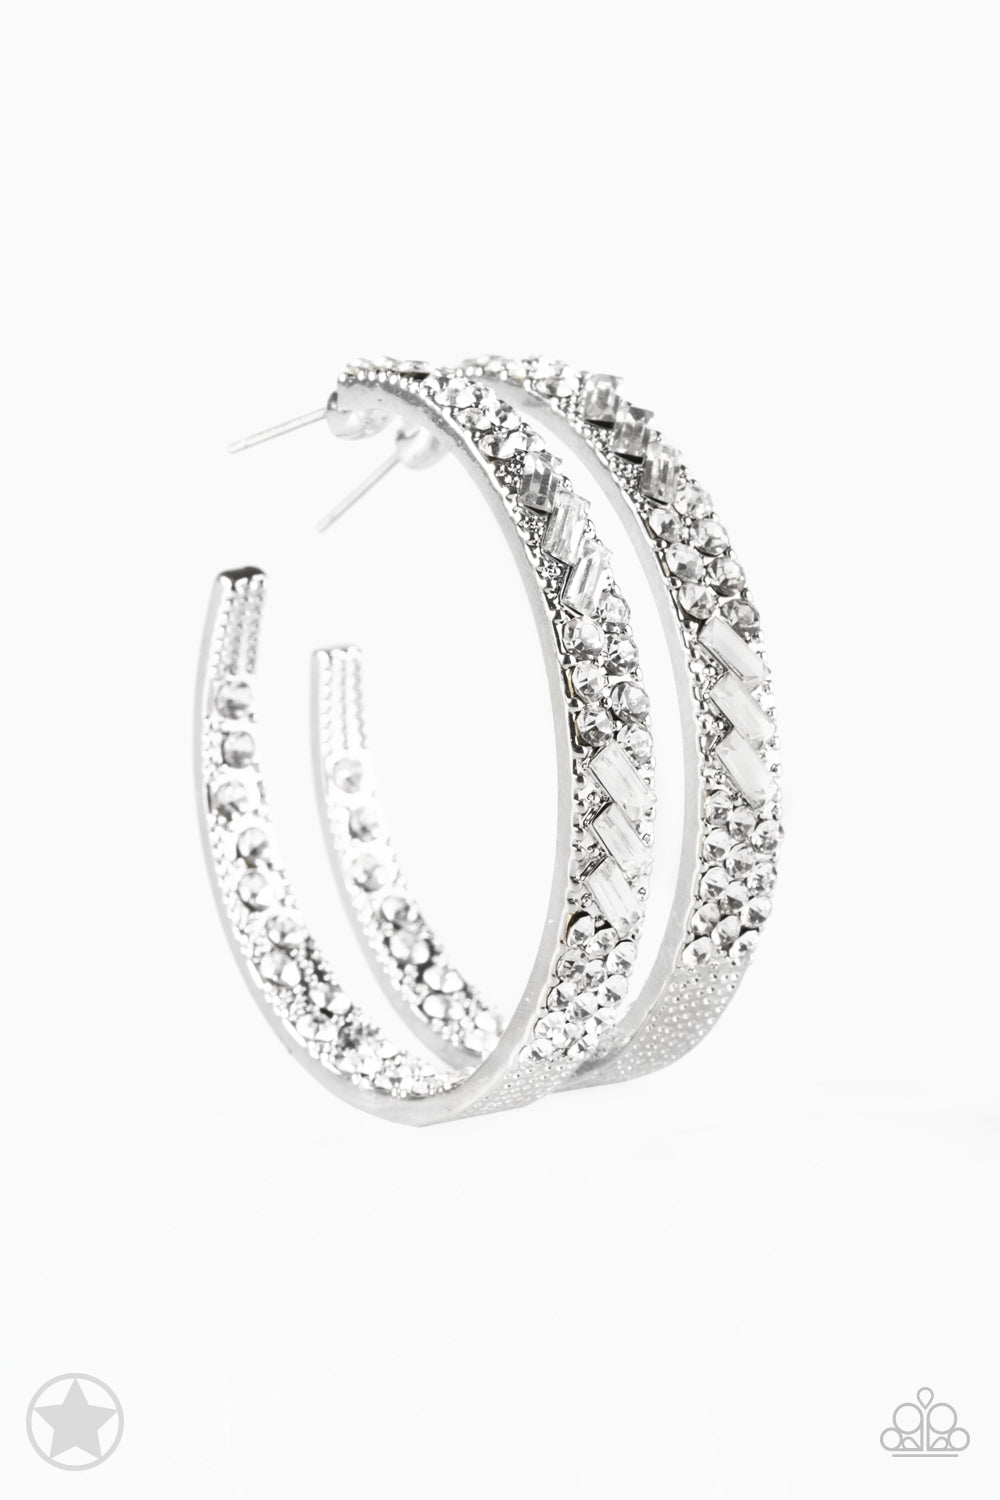 Paparazzi Glitz by Association - White Hoop Earring - Be Adored Jewelry